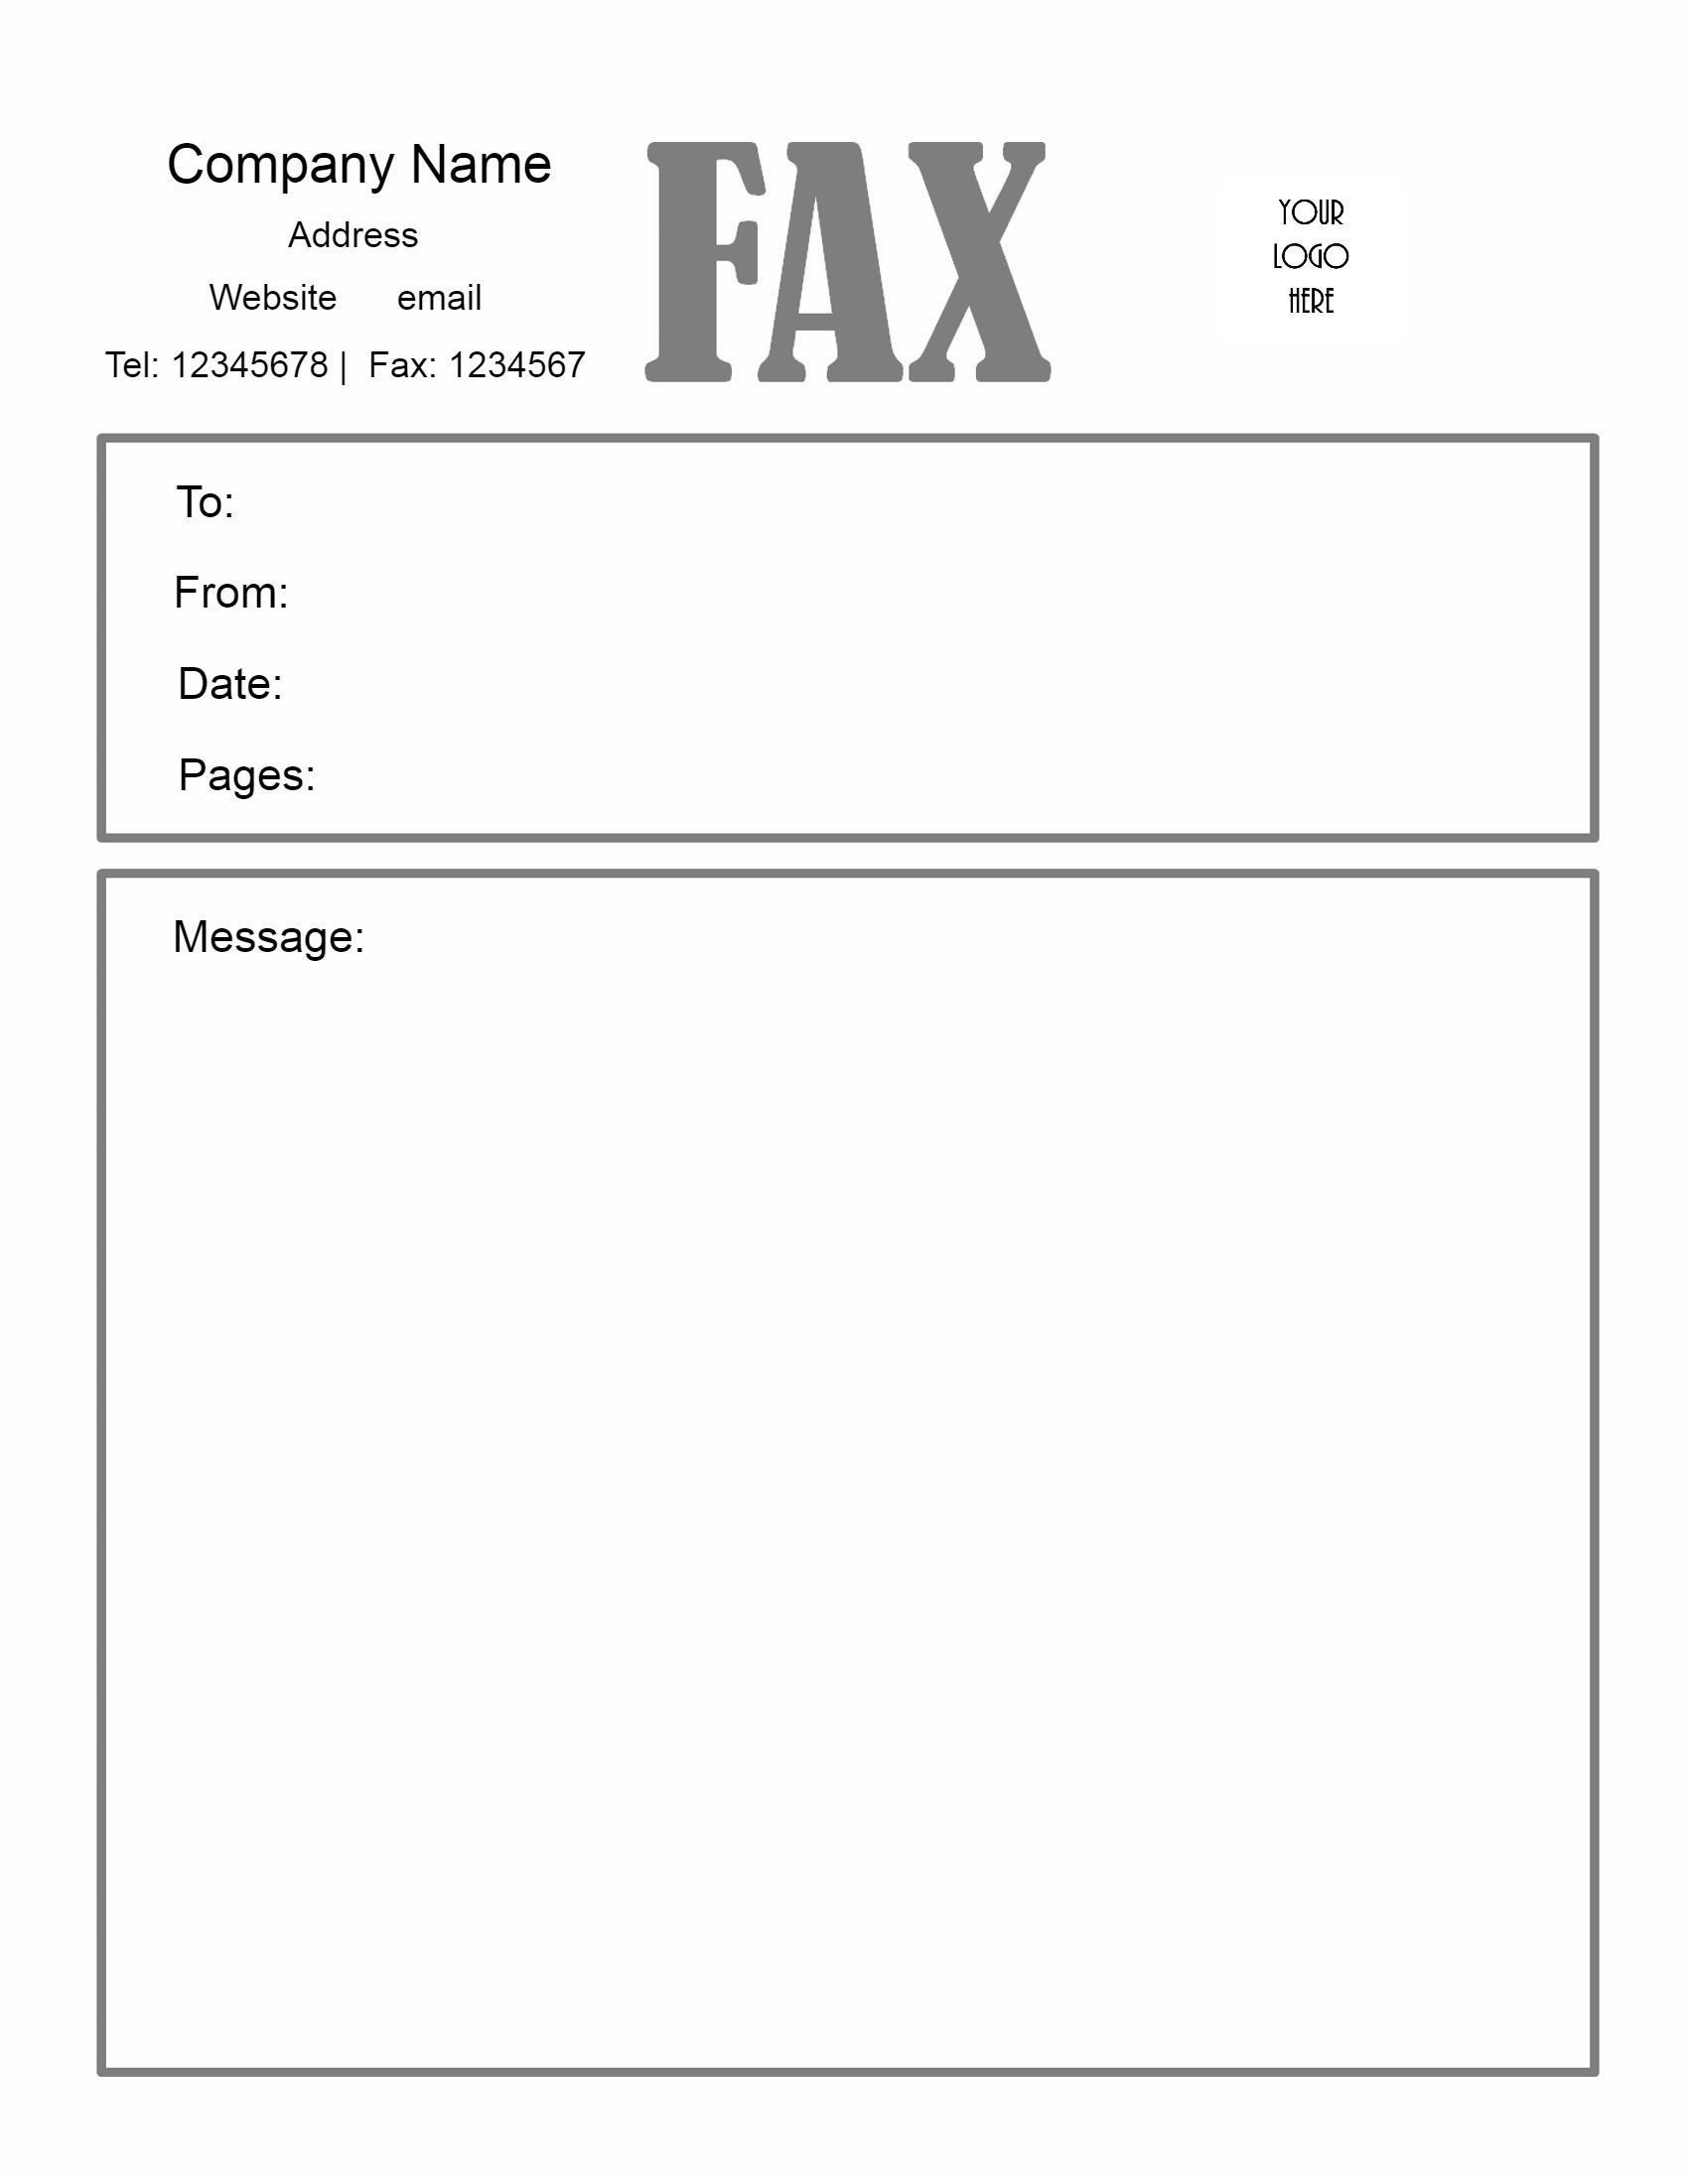 Unique Fax Cover Letters Exceltemplate Xls Xlstemplate